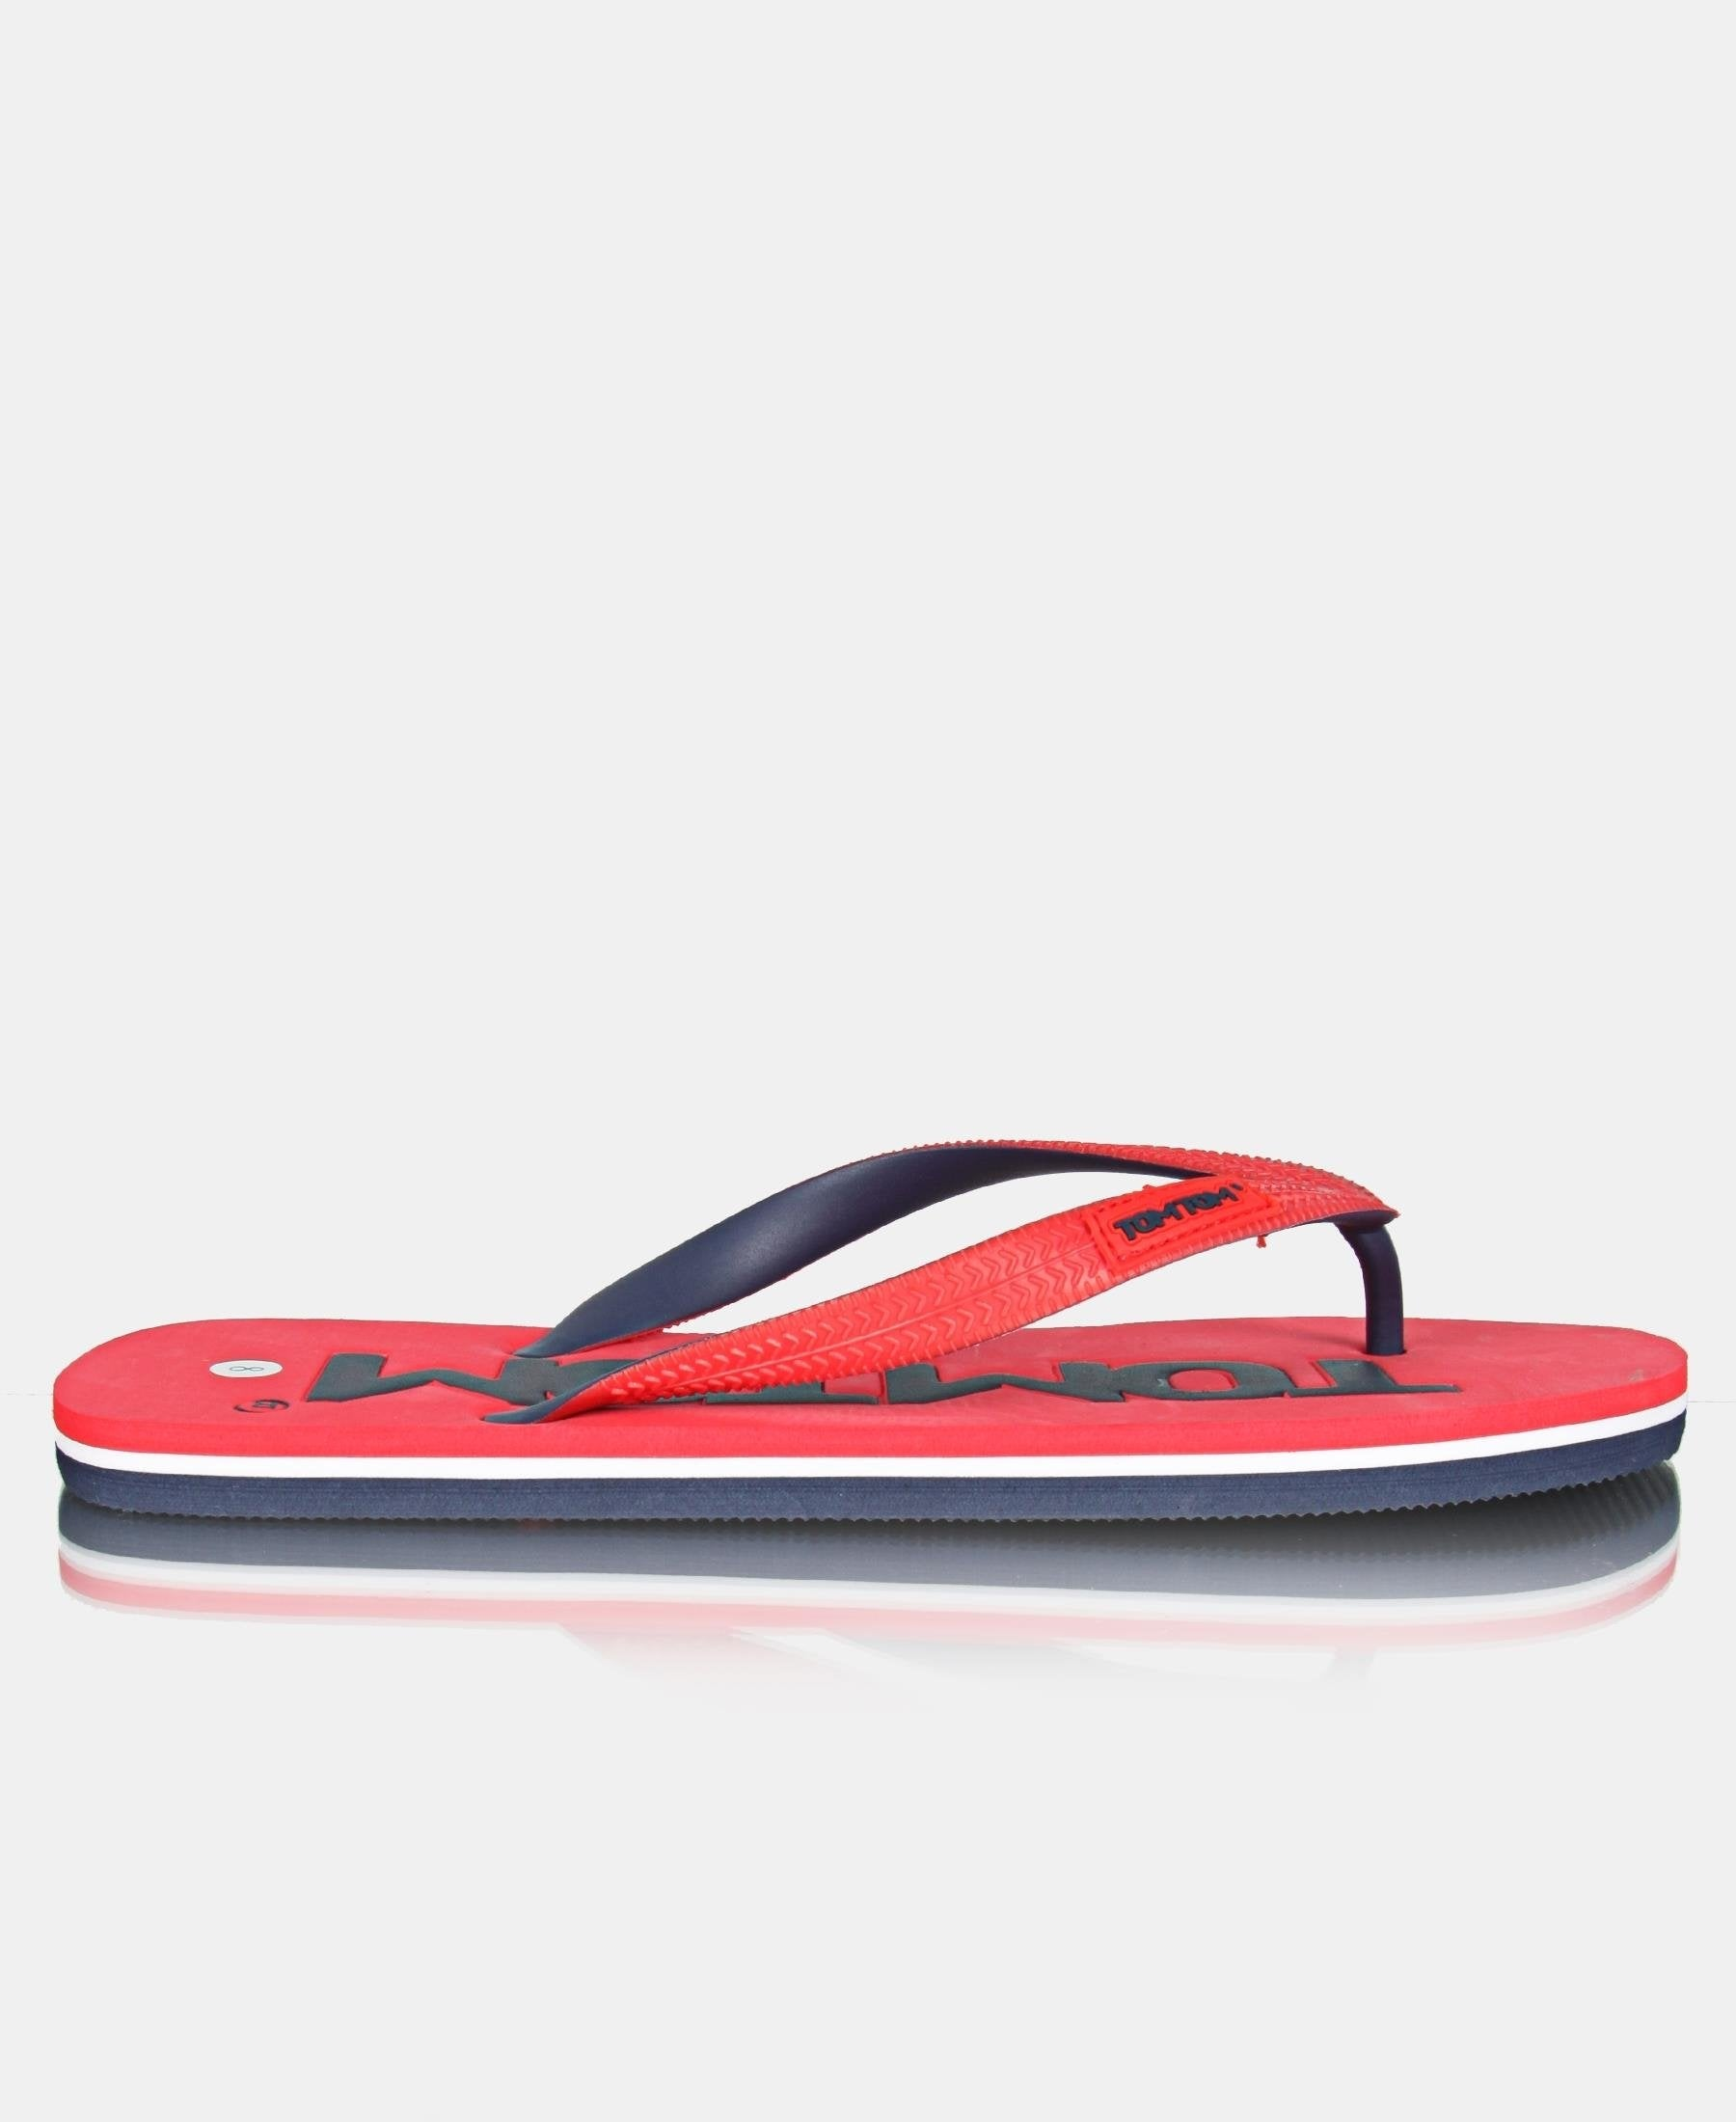 Men's Roller Sandals - Red-Navy